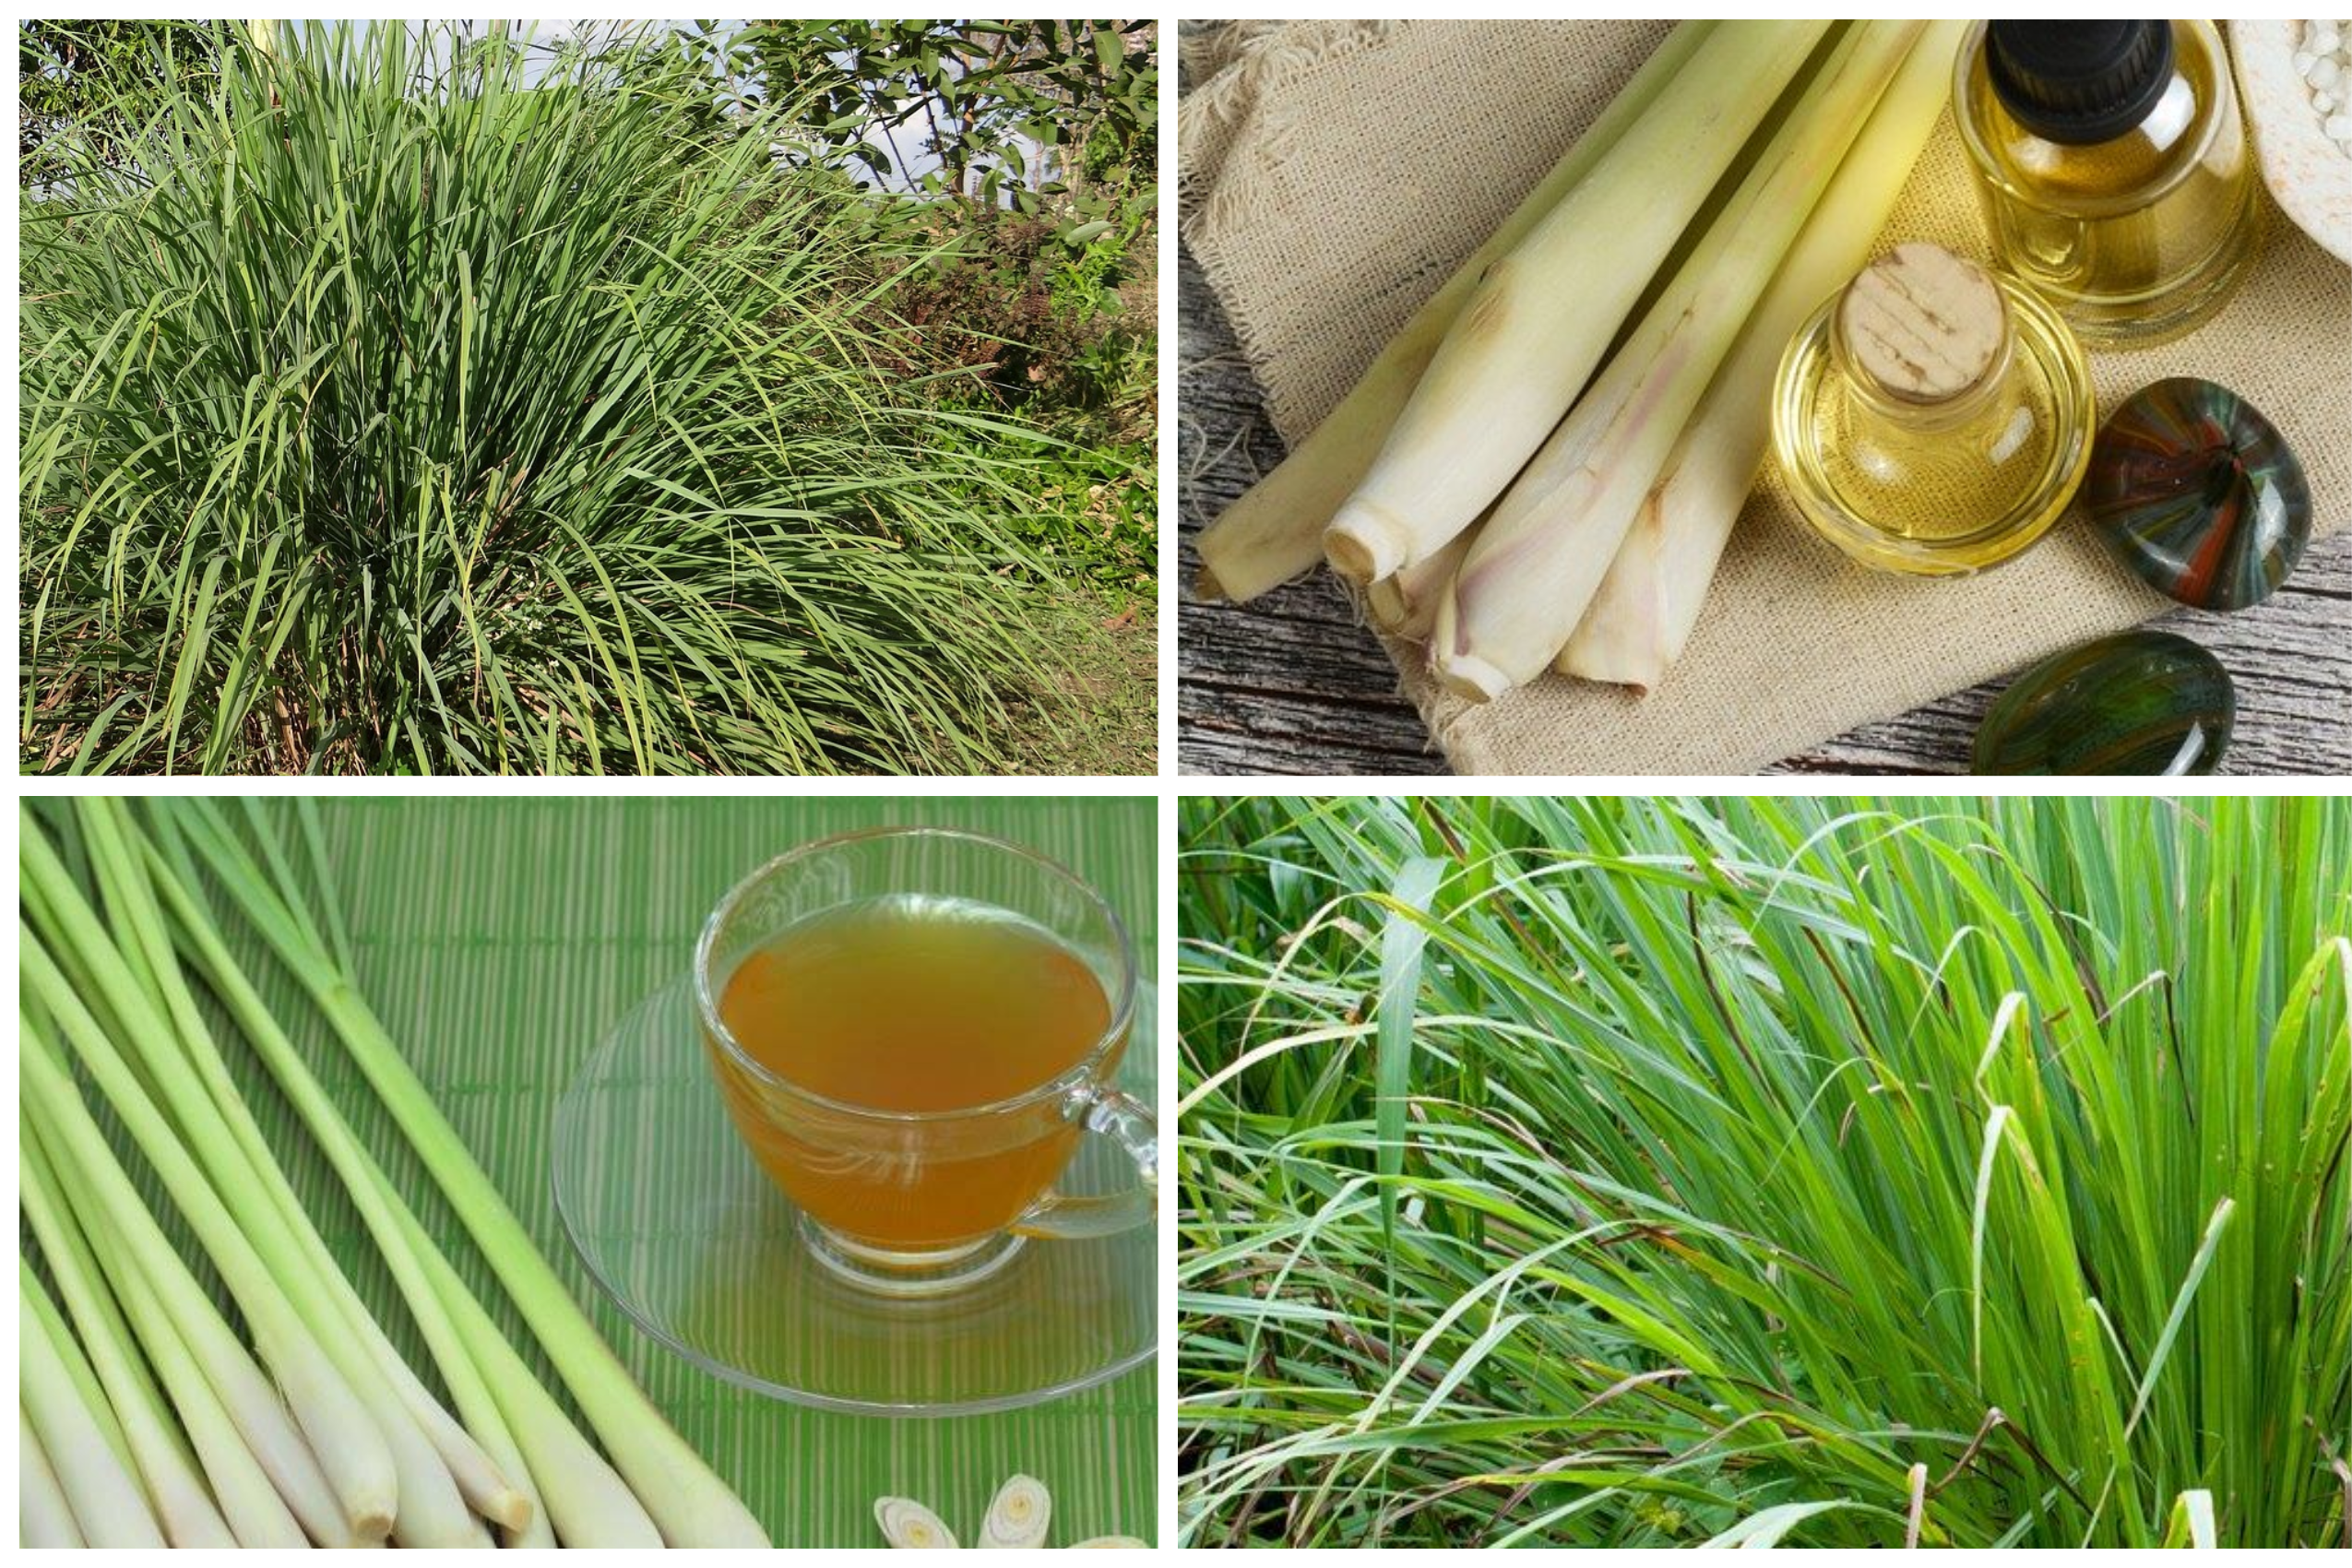 AN EFFECTIVE GUIDE TO GROW LEMON-GRASS AND ITS BENEFITS